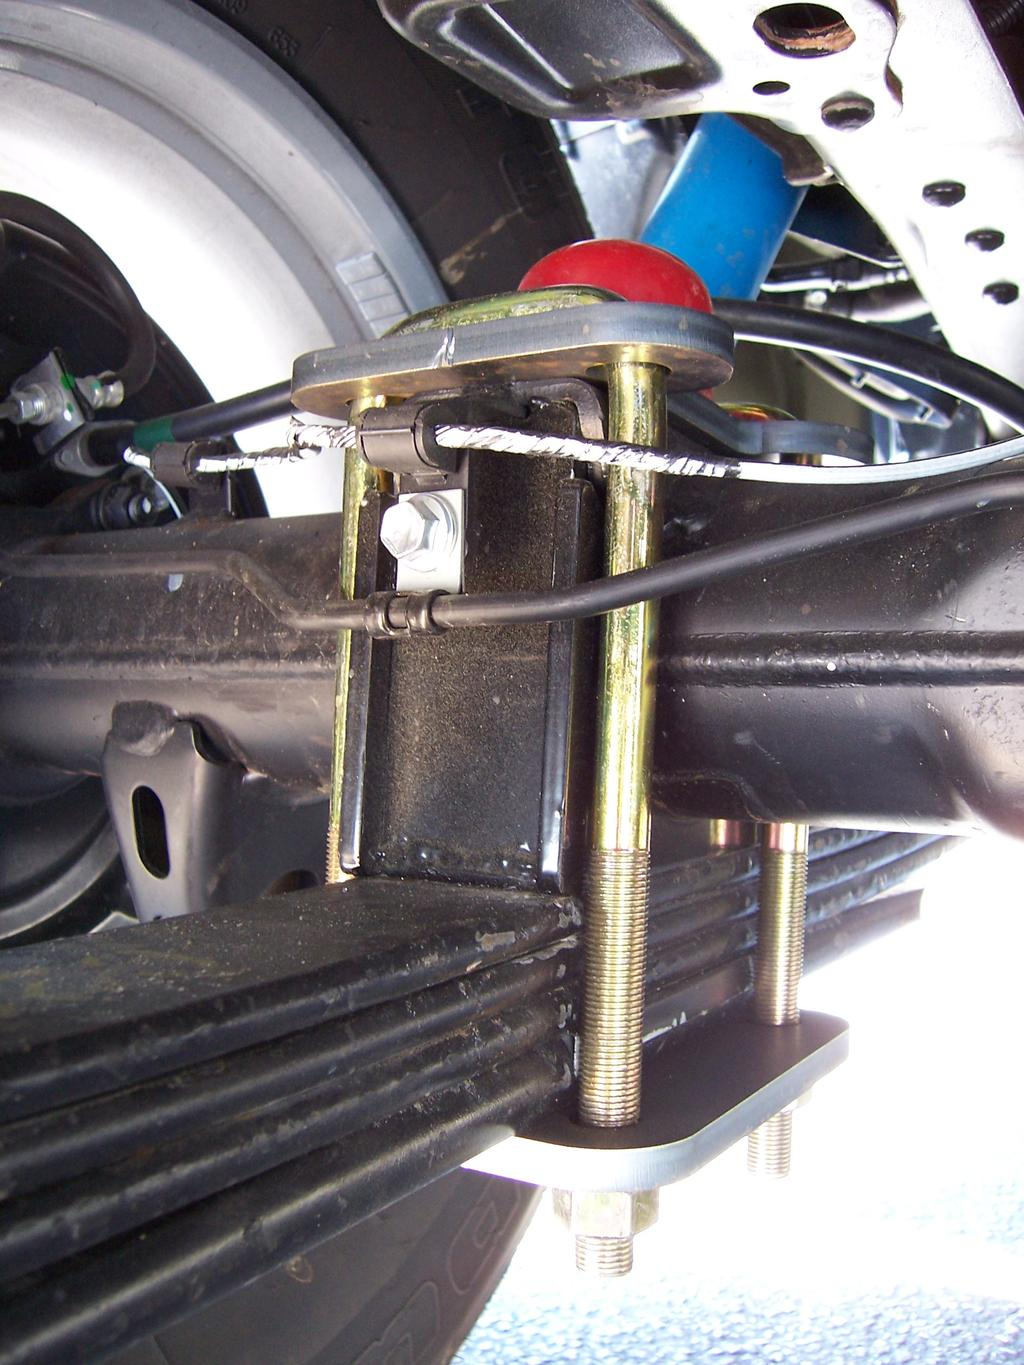 Page 6 Installation of Front lowering kit Step 10: Install the SOS axle components as shown in photo below.